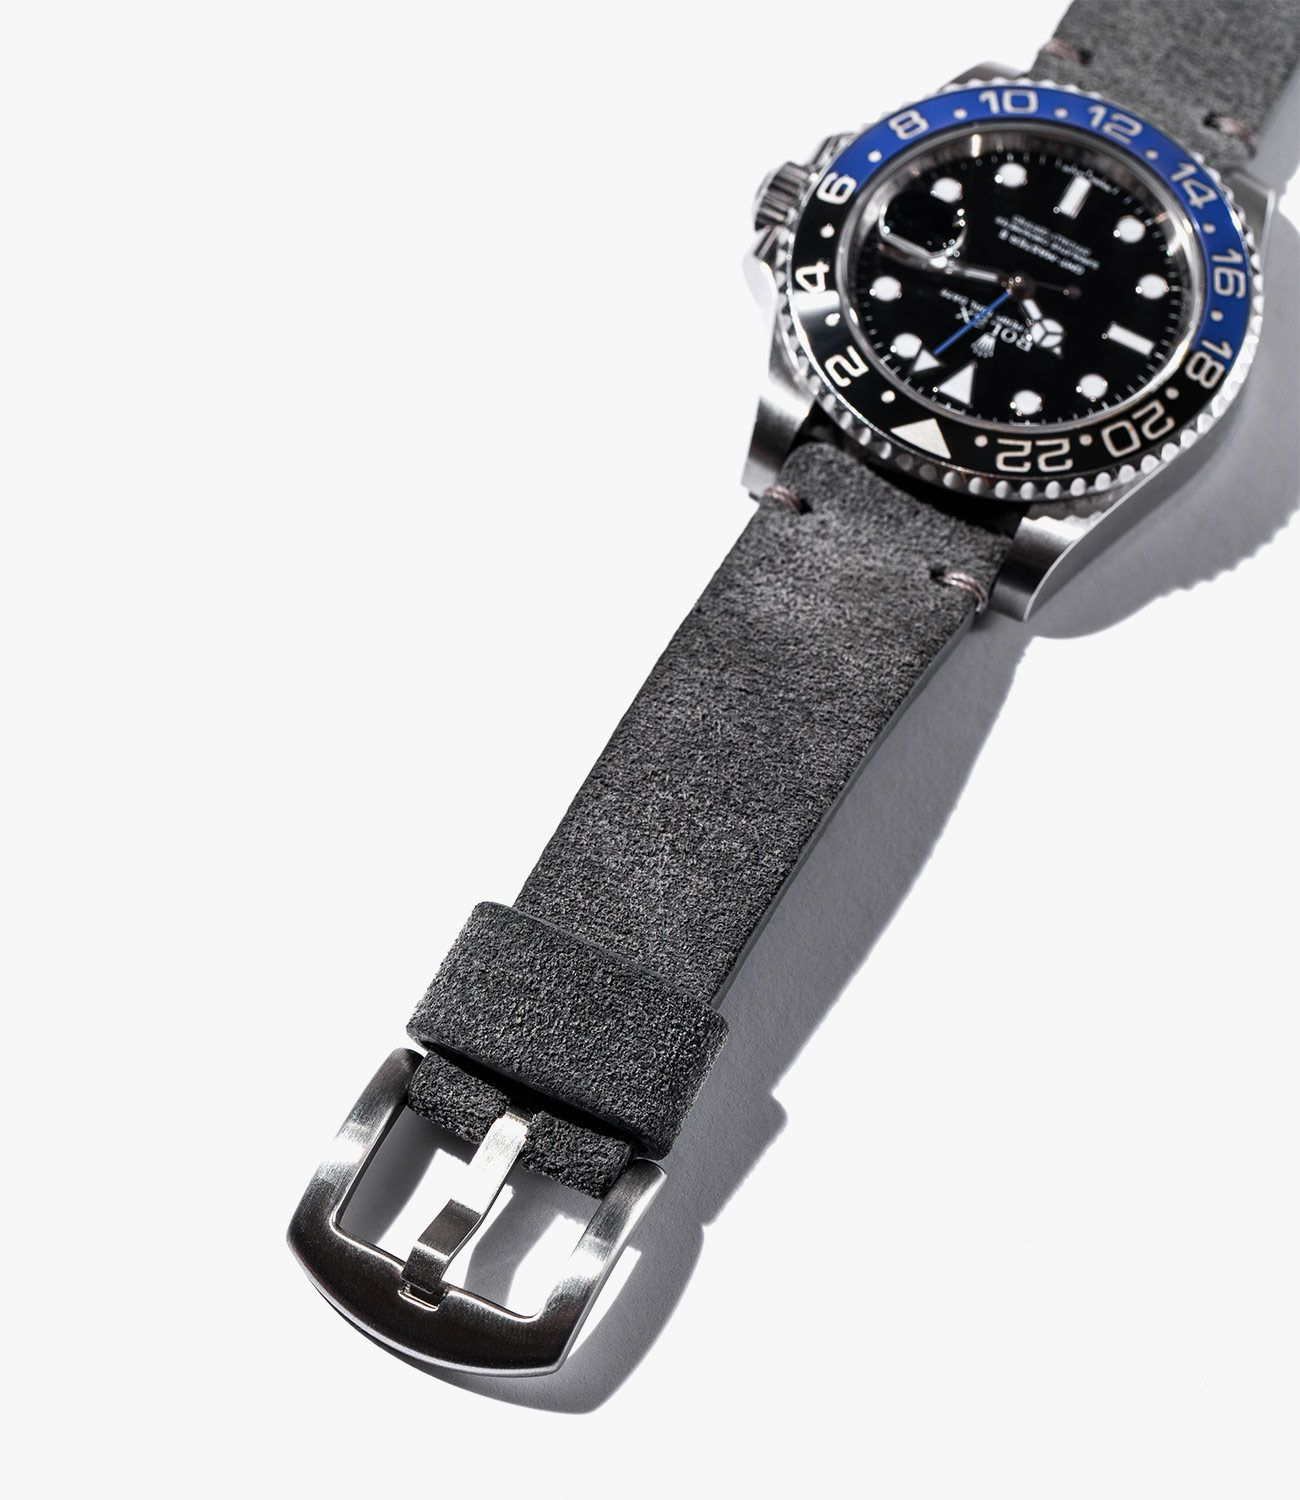 Leather-Watch-Bands-gear-patrol-Bas-and-Loks-Grey-slide-2